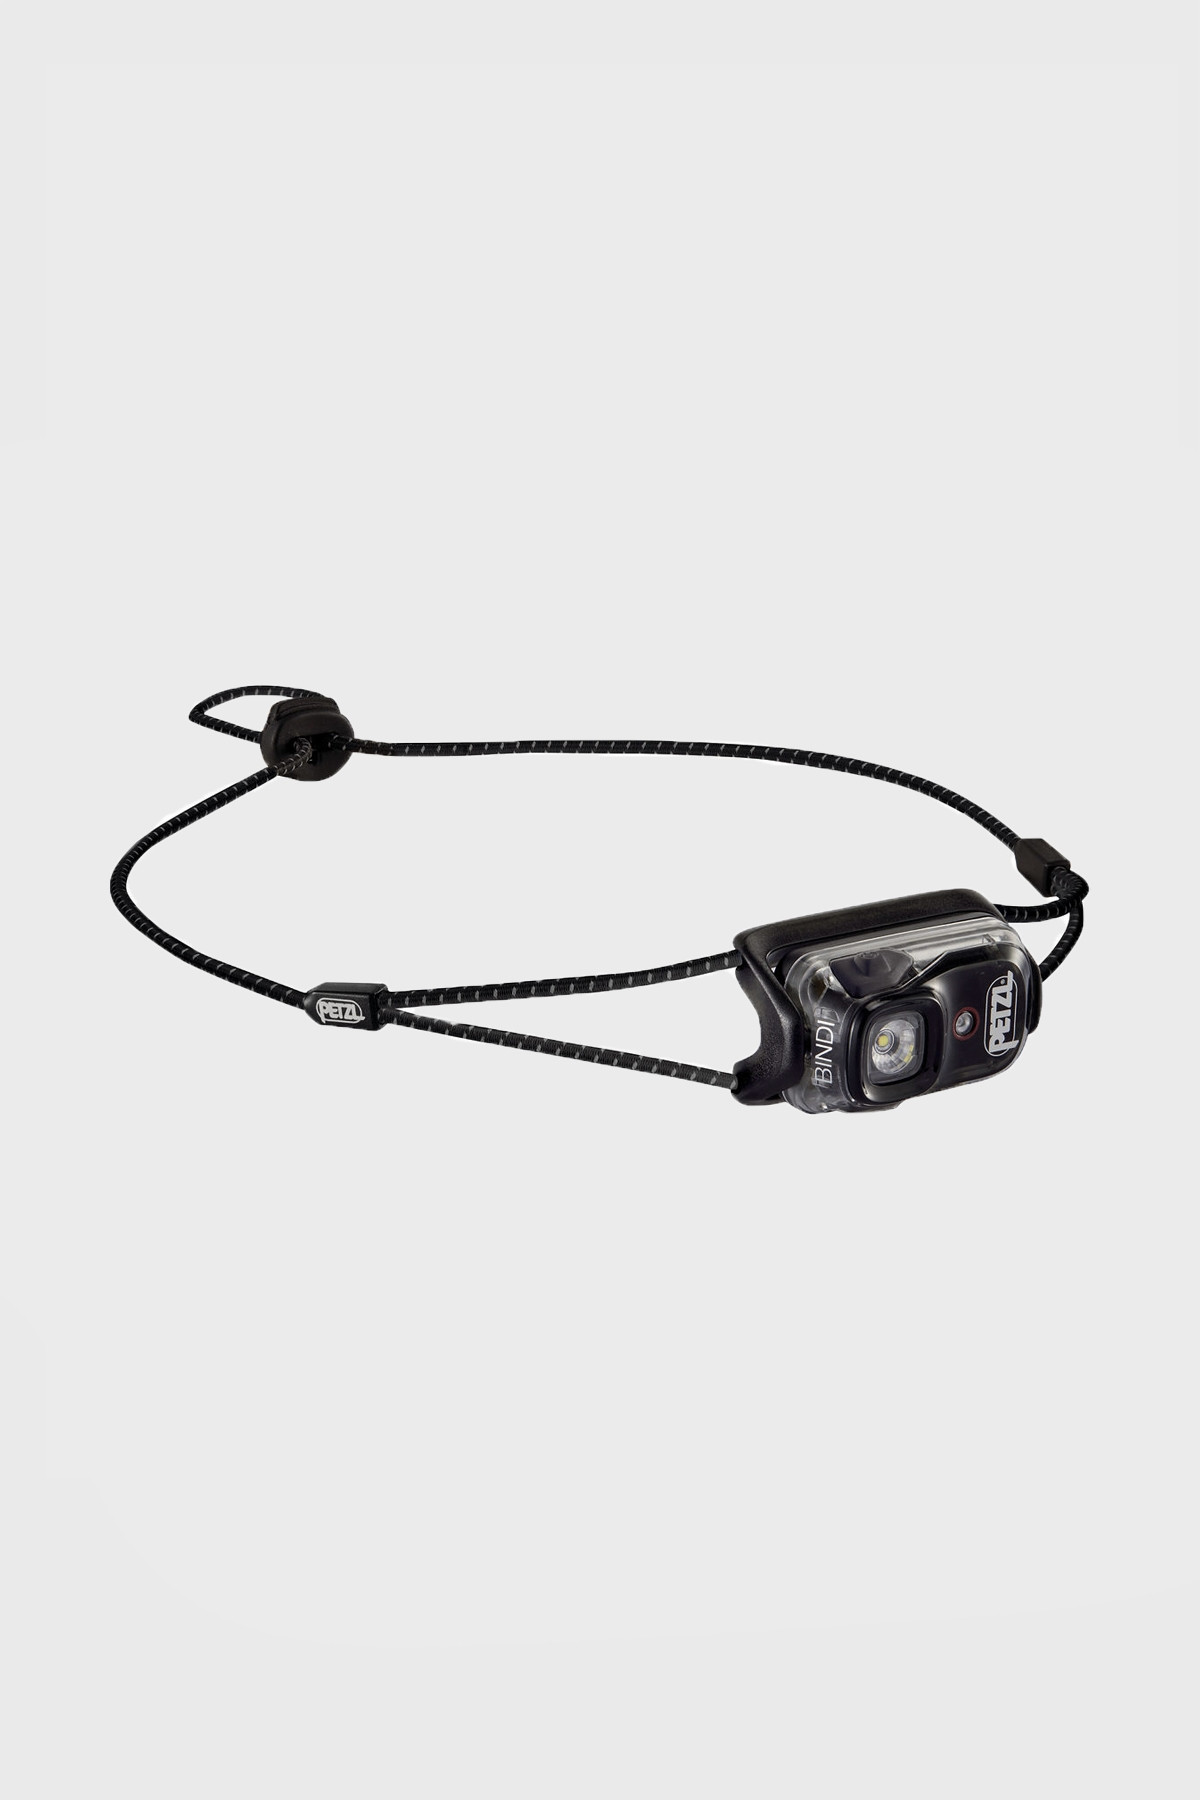 Petzl - Bindi - black